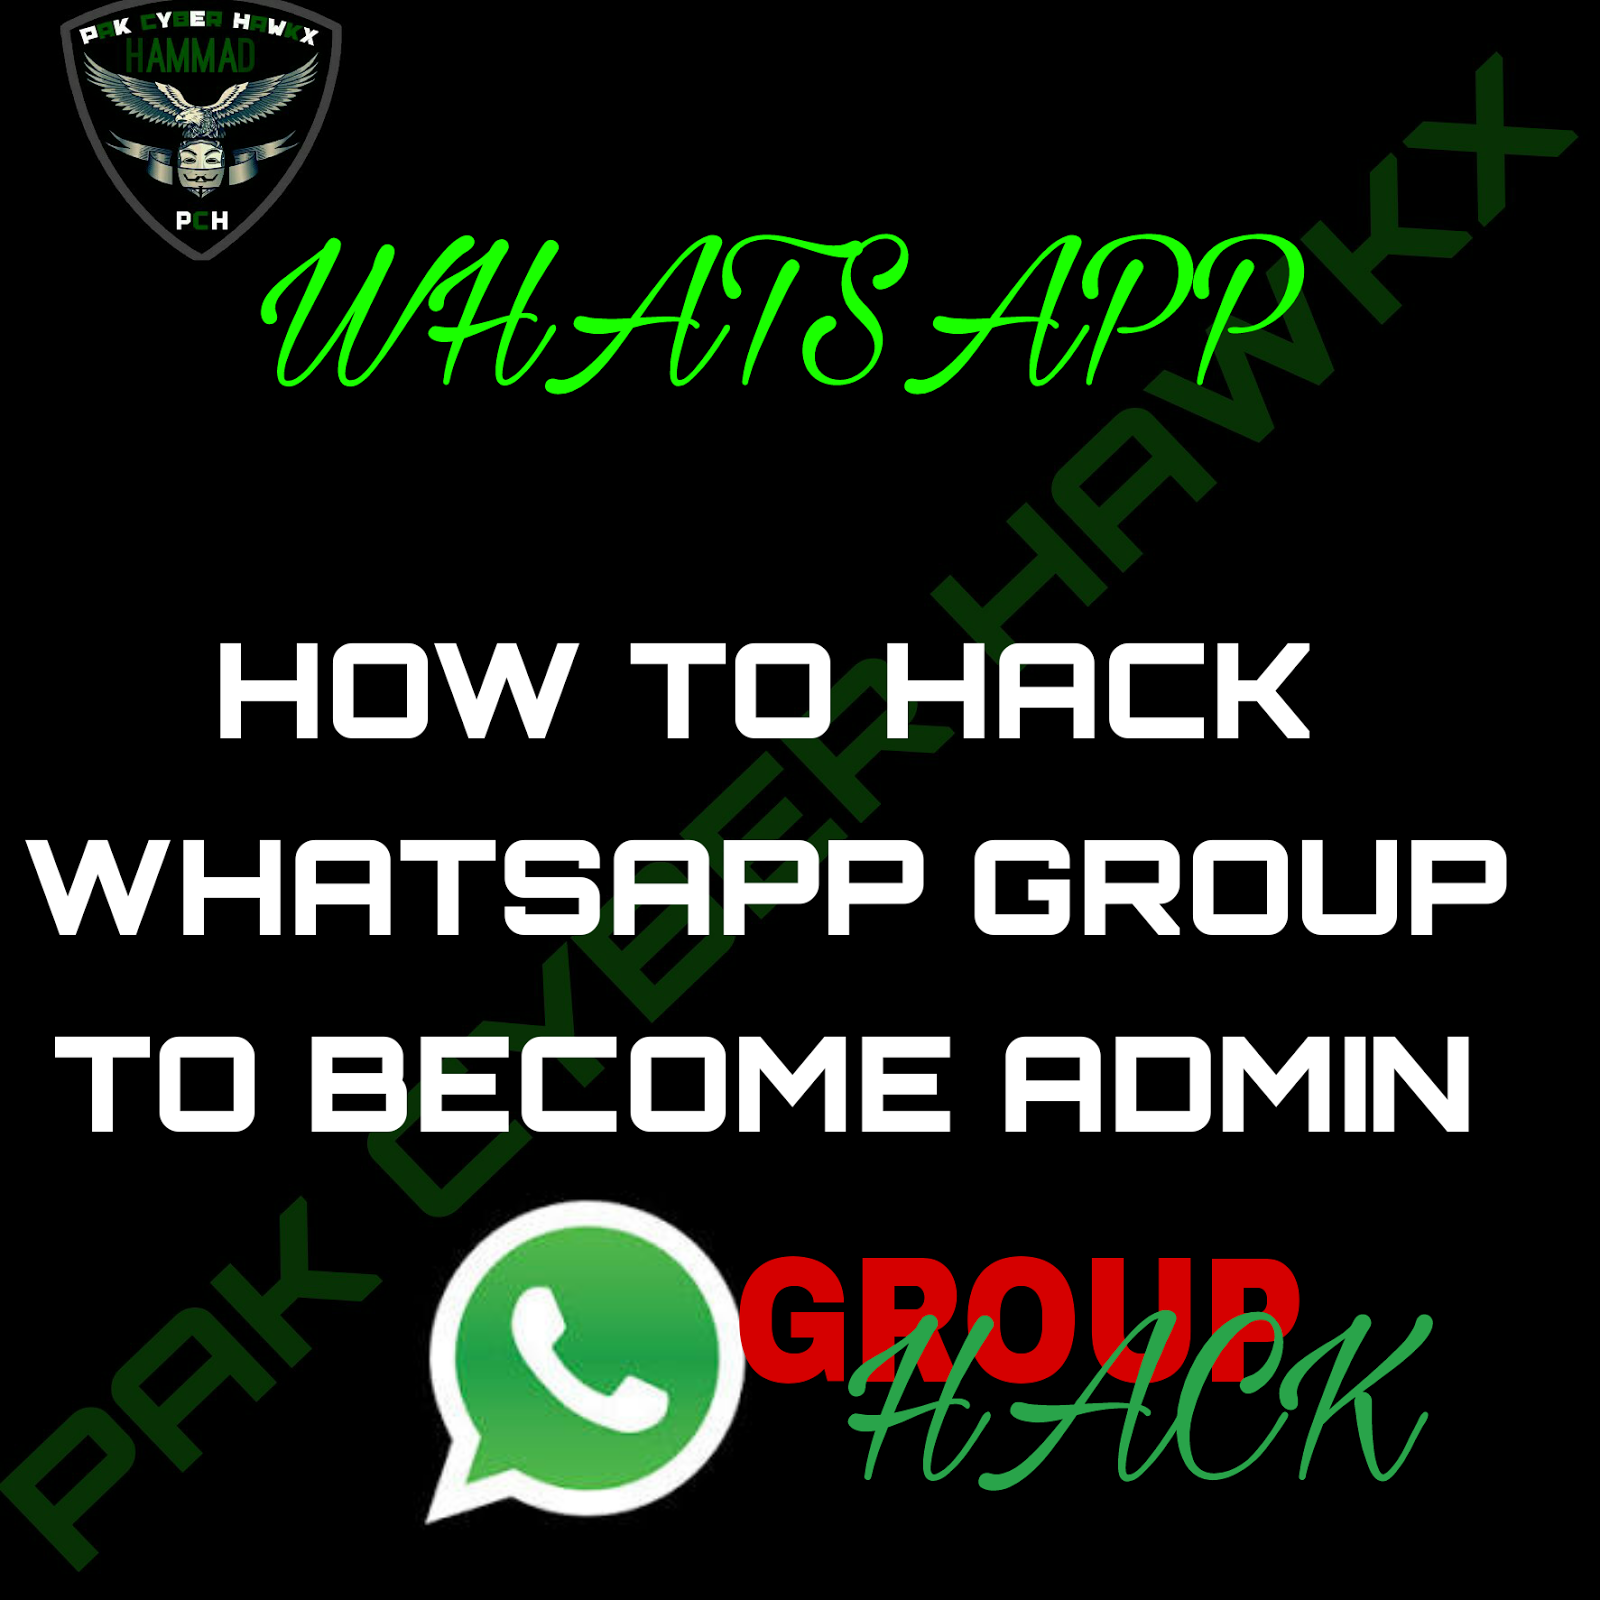 How To Hack WhatsApp Group To Become Group Admin - Technical